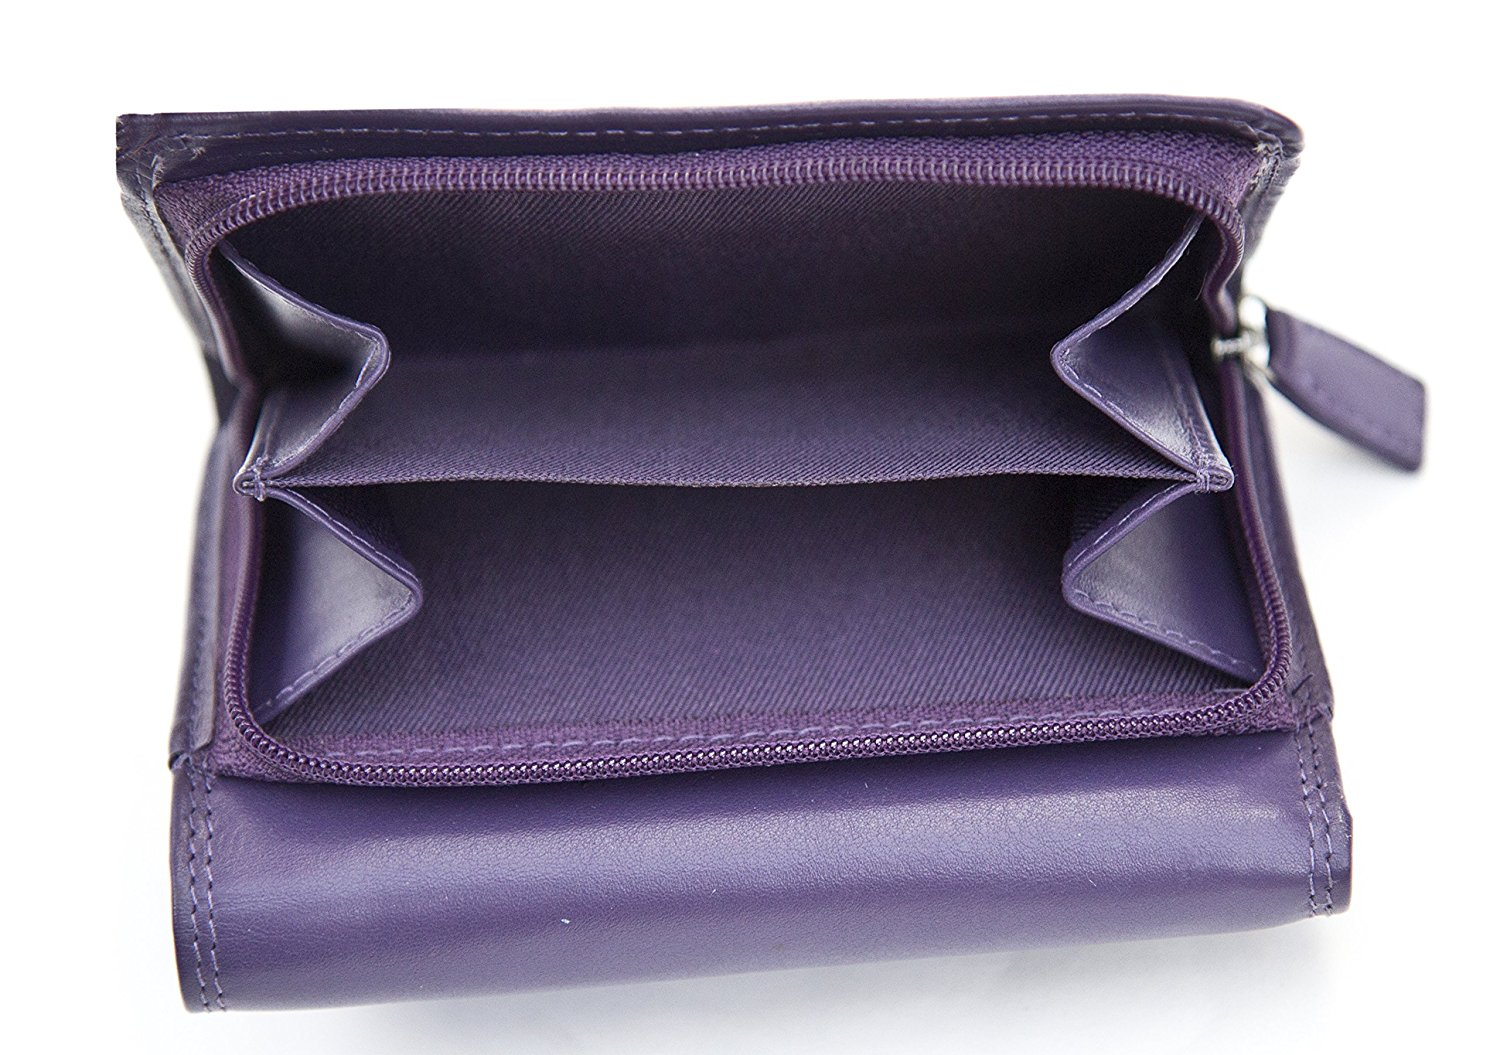 Ladies-Super-Soft-Genuine-Leather-Tri-Fold-Purse-Coin-Section-Purple-Red-Plum thumbnail 13